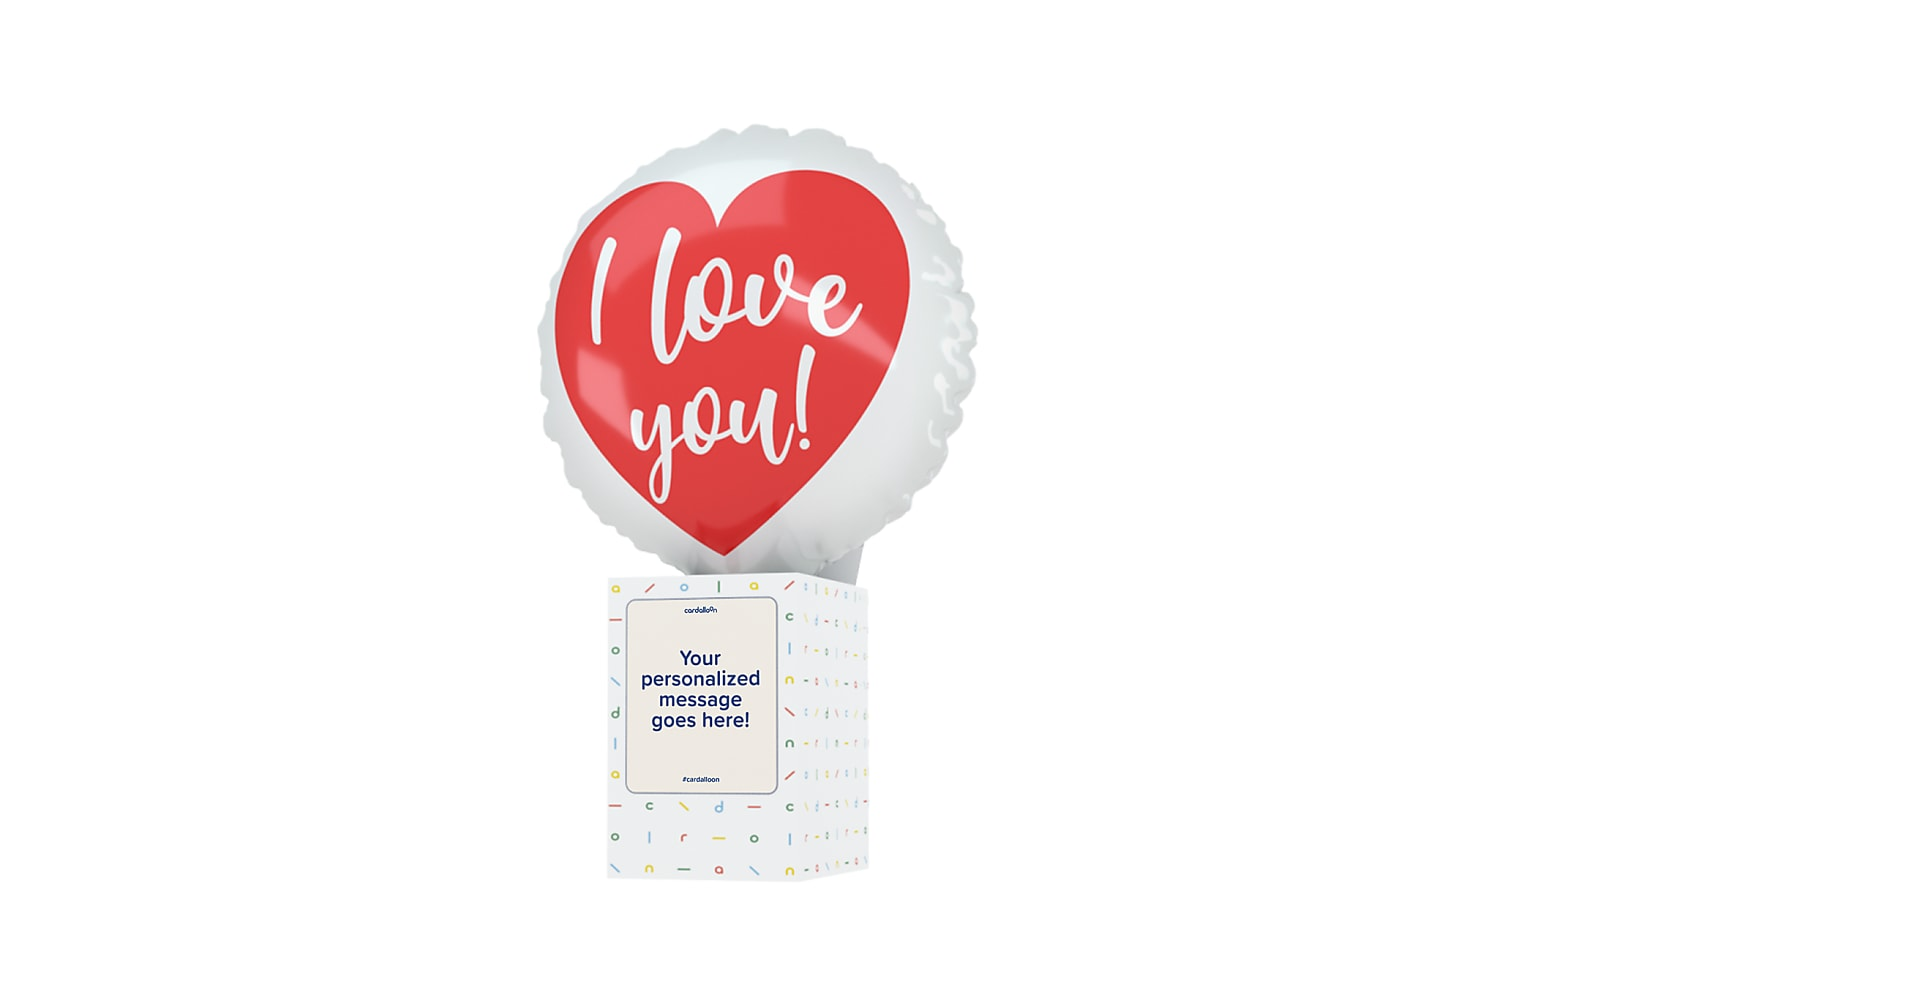 I Love You Cardalloon - Image 1 Of 7